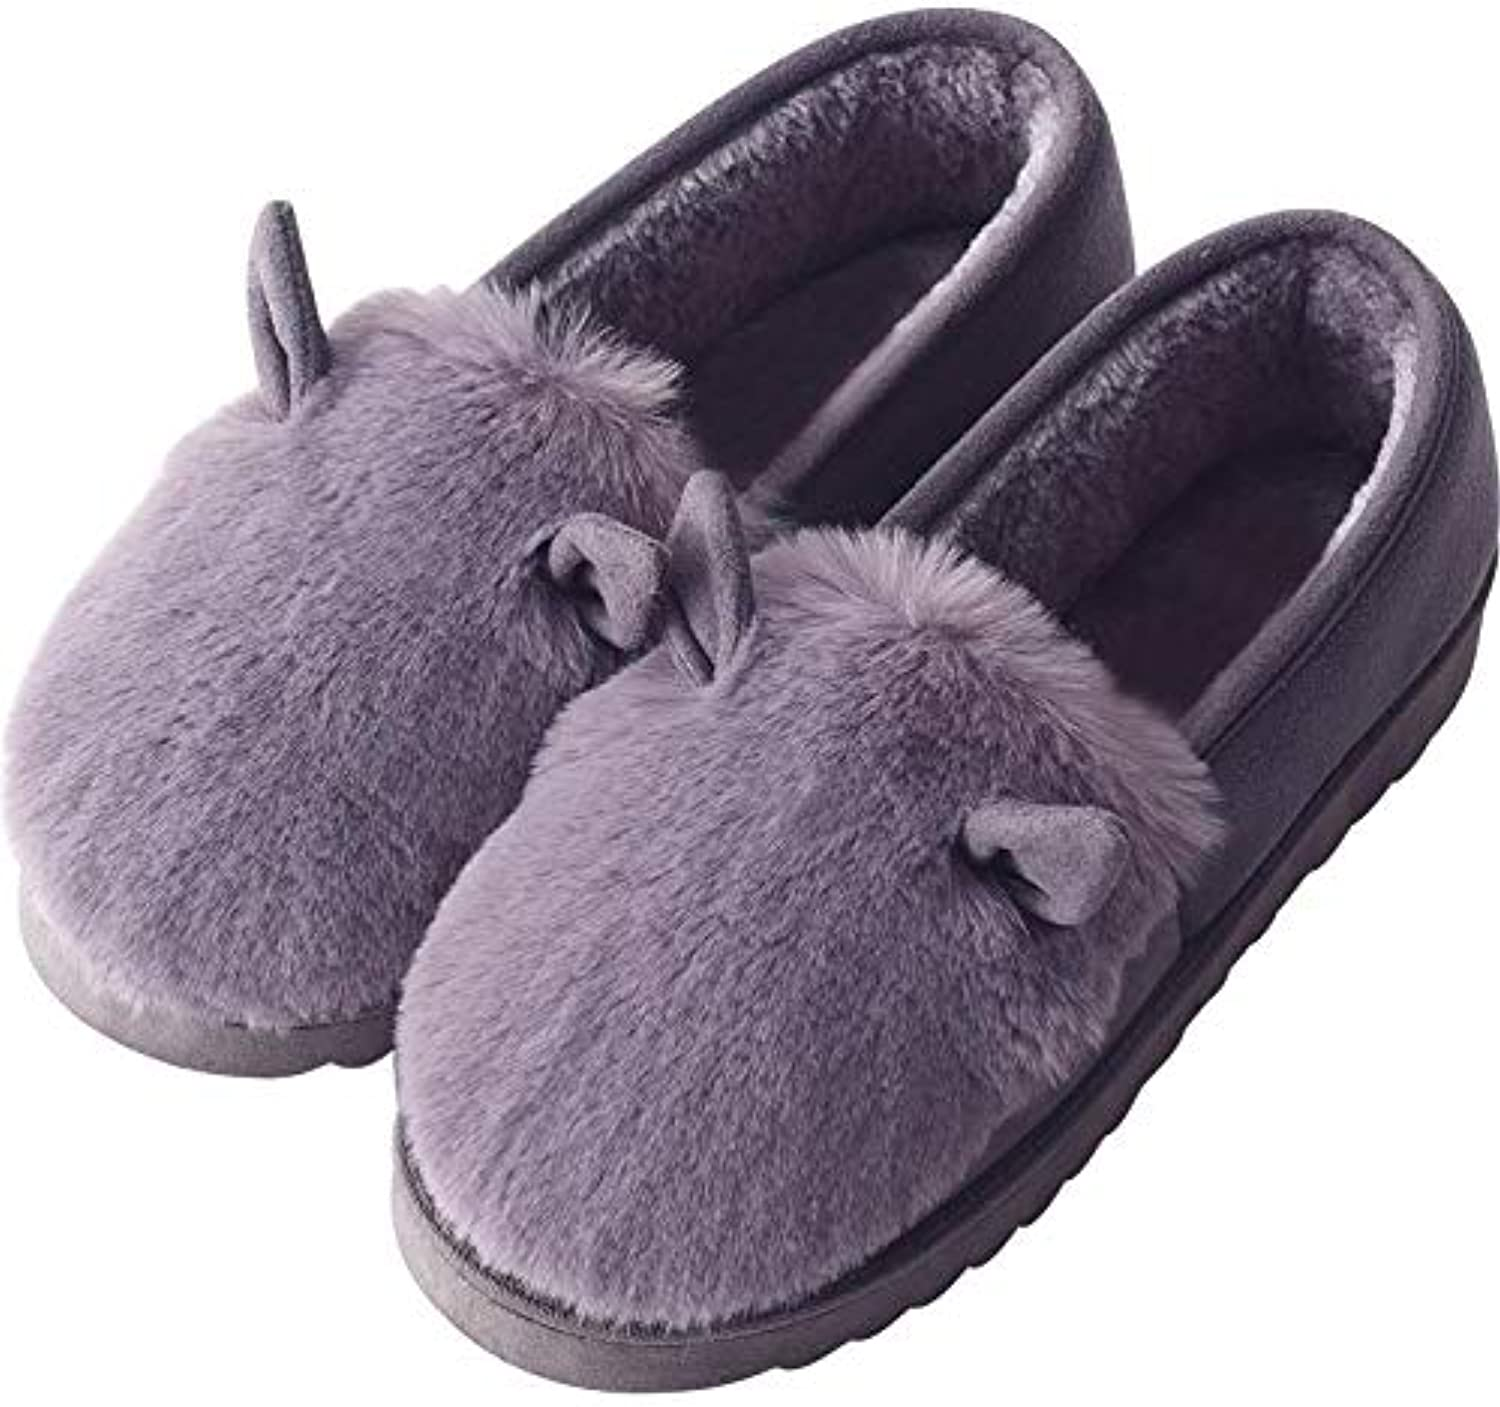 Winter Cotton Slippers, Plush Lining Clog House Indoor Non-Slip Floor shoes for Adult Women